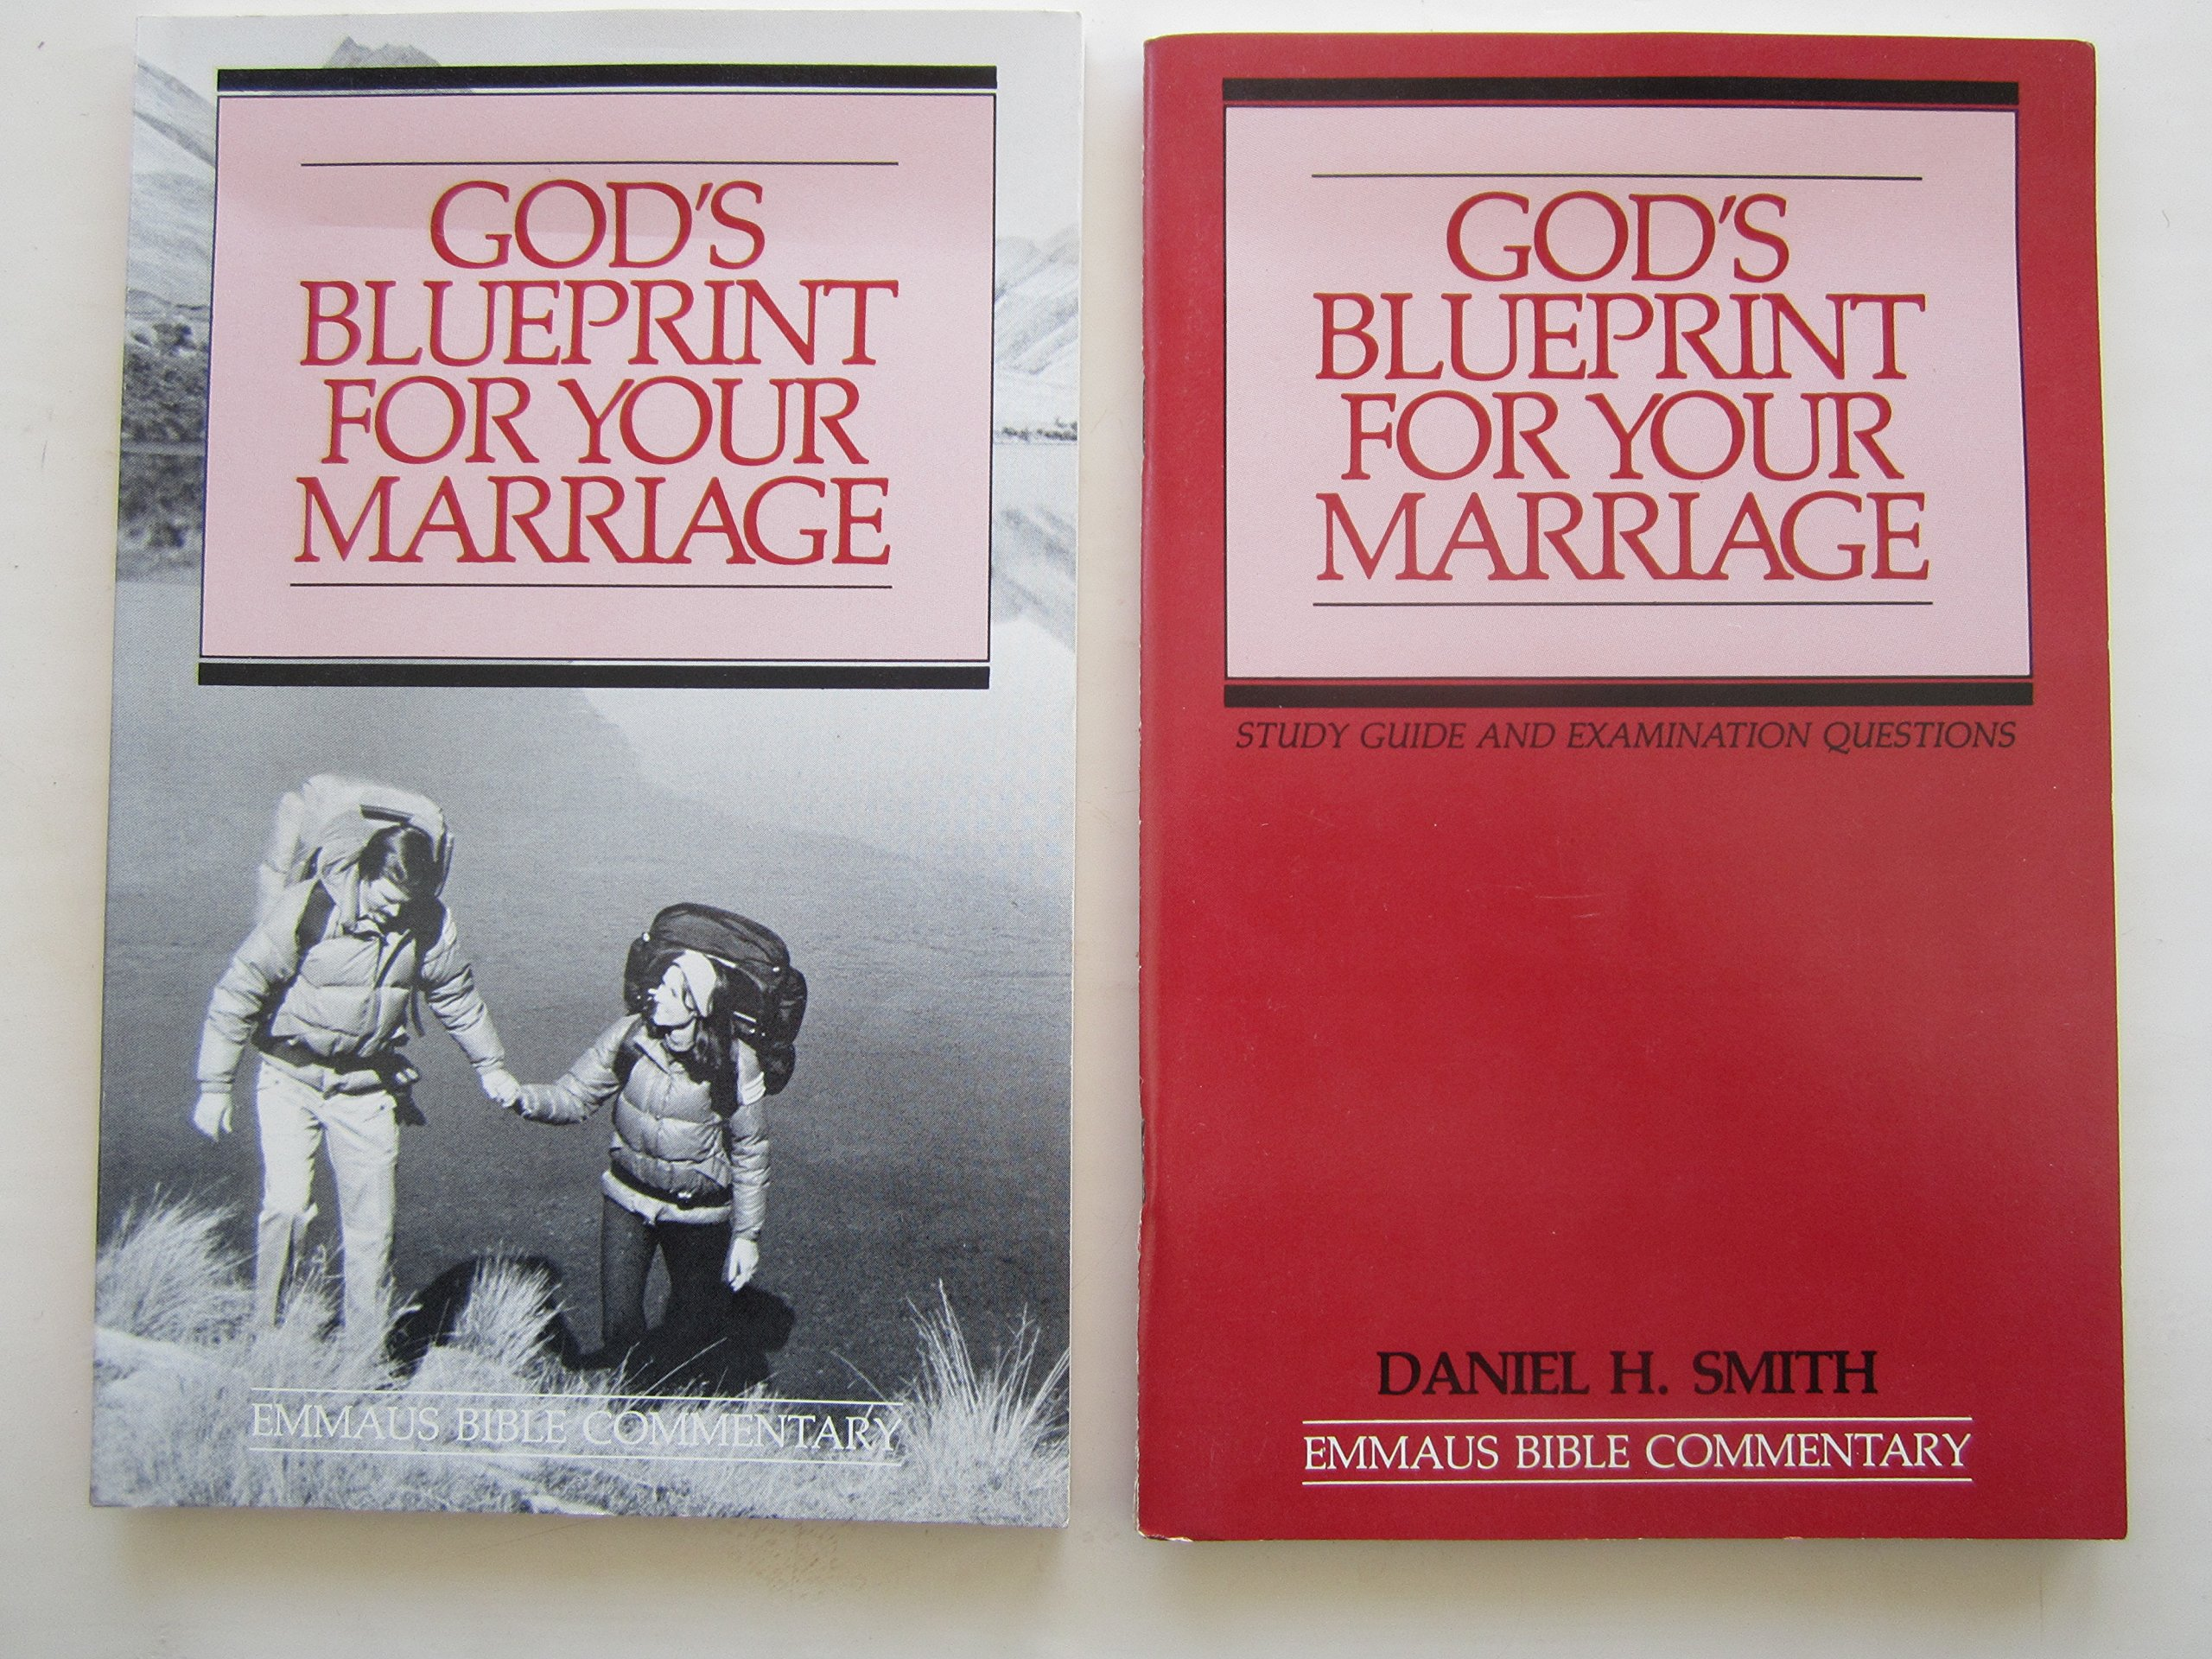 Gods blueprint for your marriage study guide and examination gods blueprint for your marriage study guide and examination questions daniel h smith 9780940293434 amazon books malvernweather Gallery